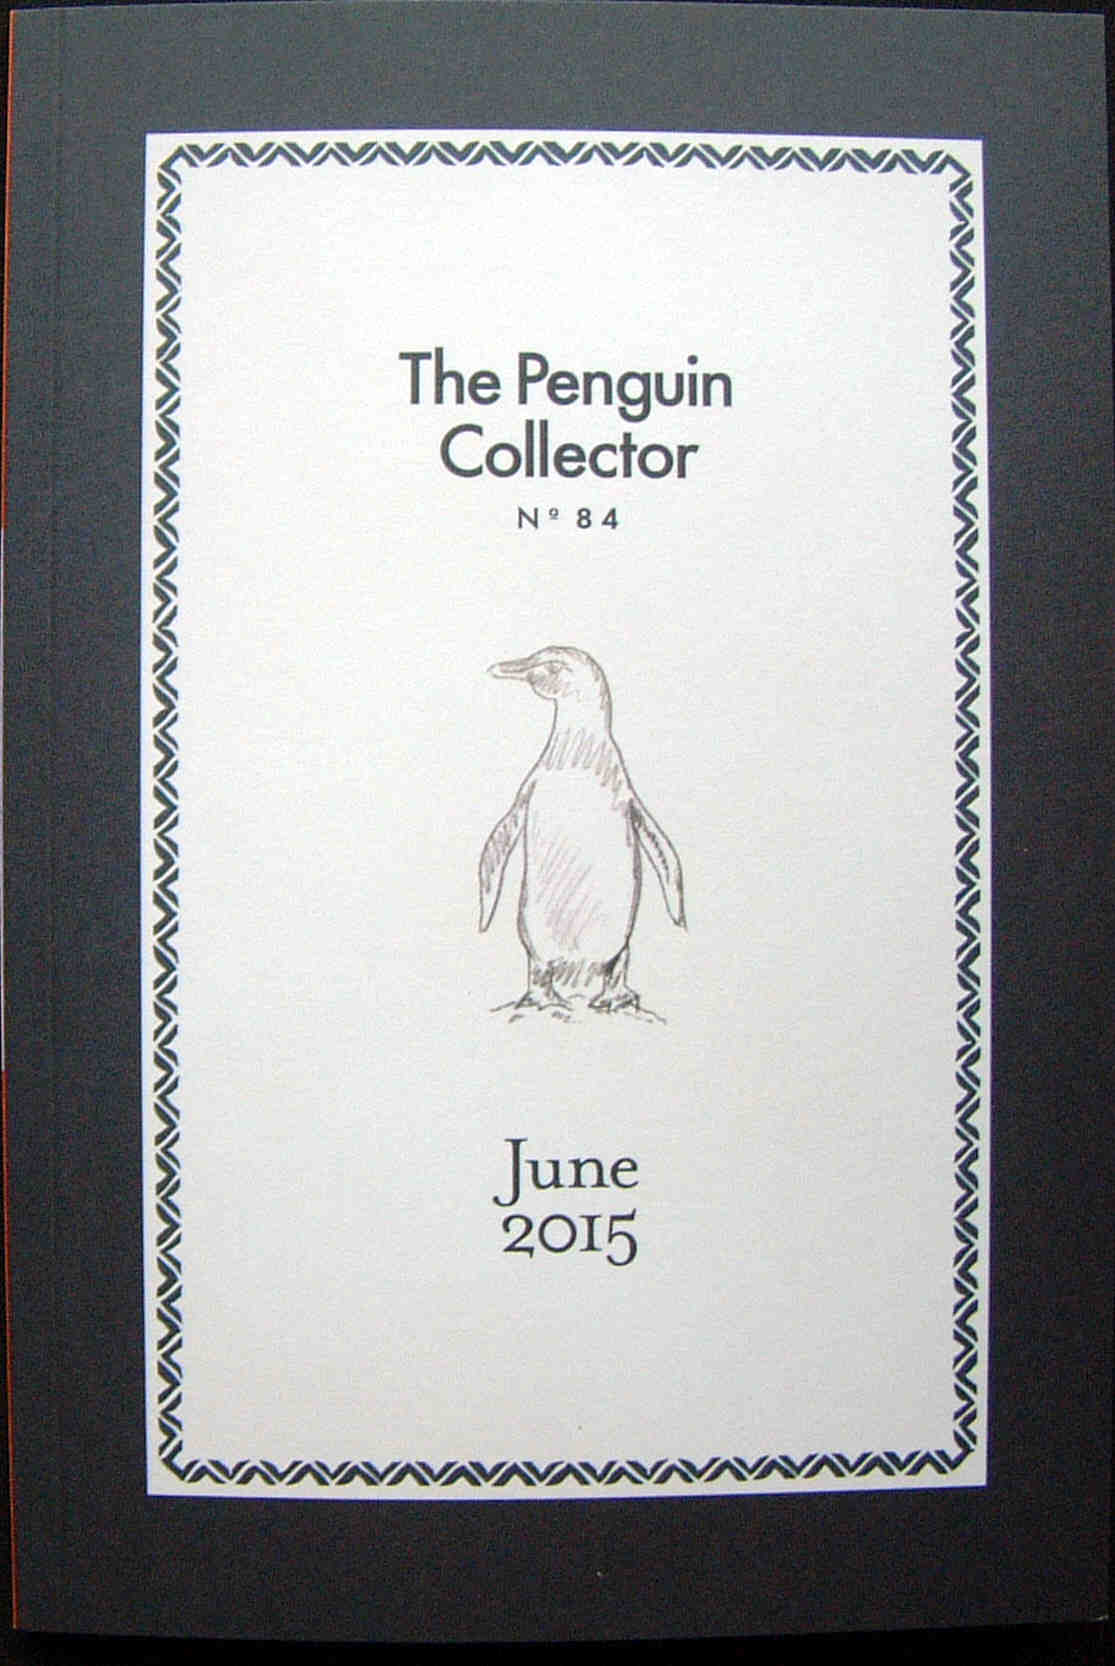 The Penguin Collector 84 Image 1